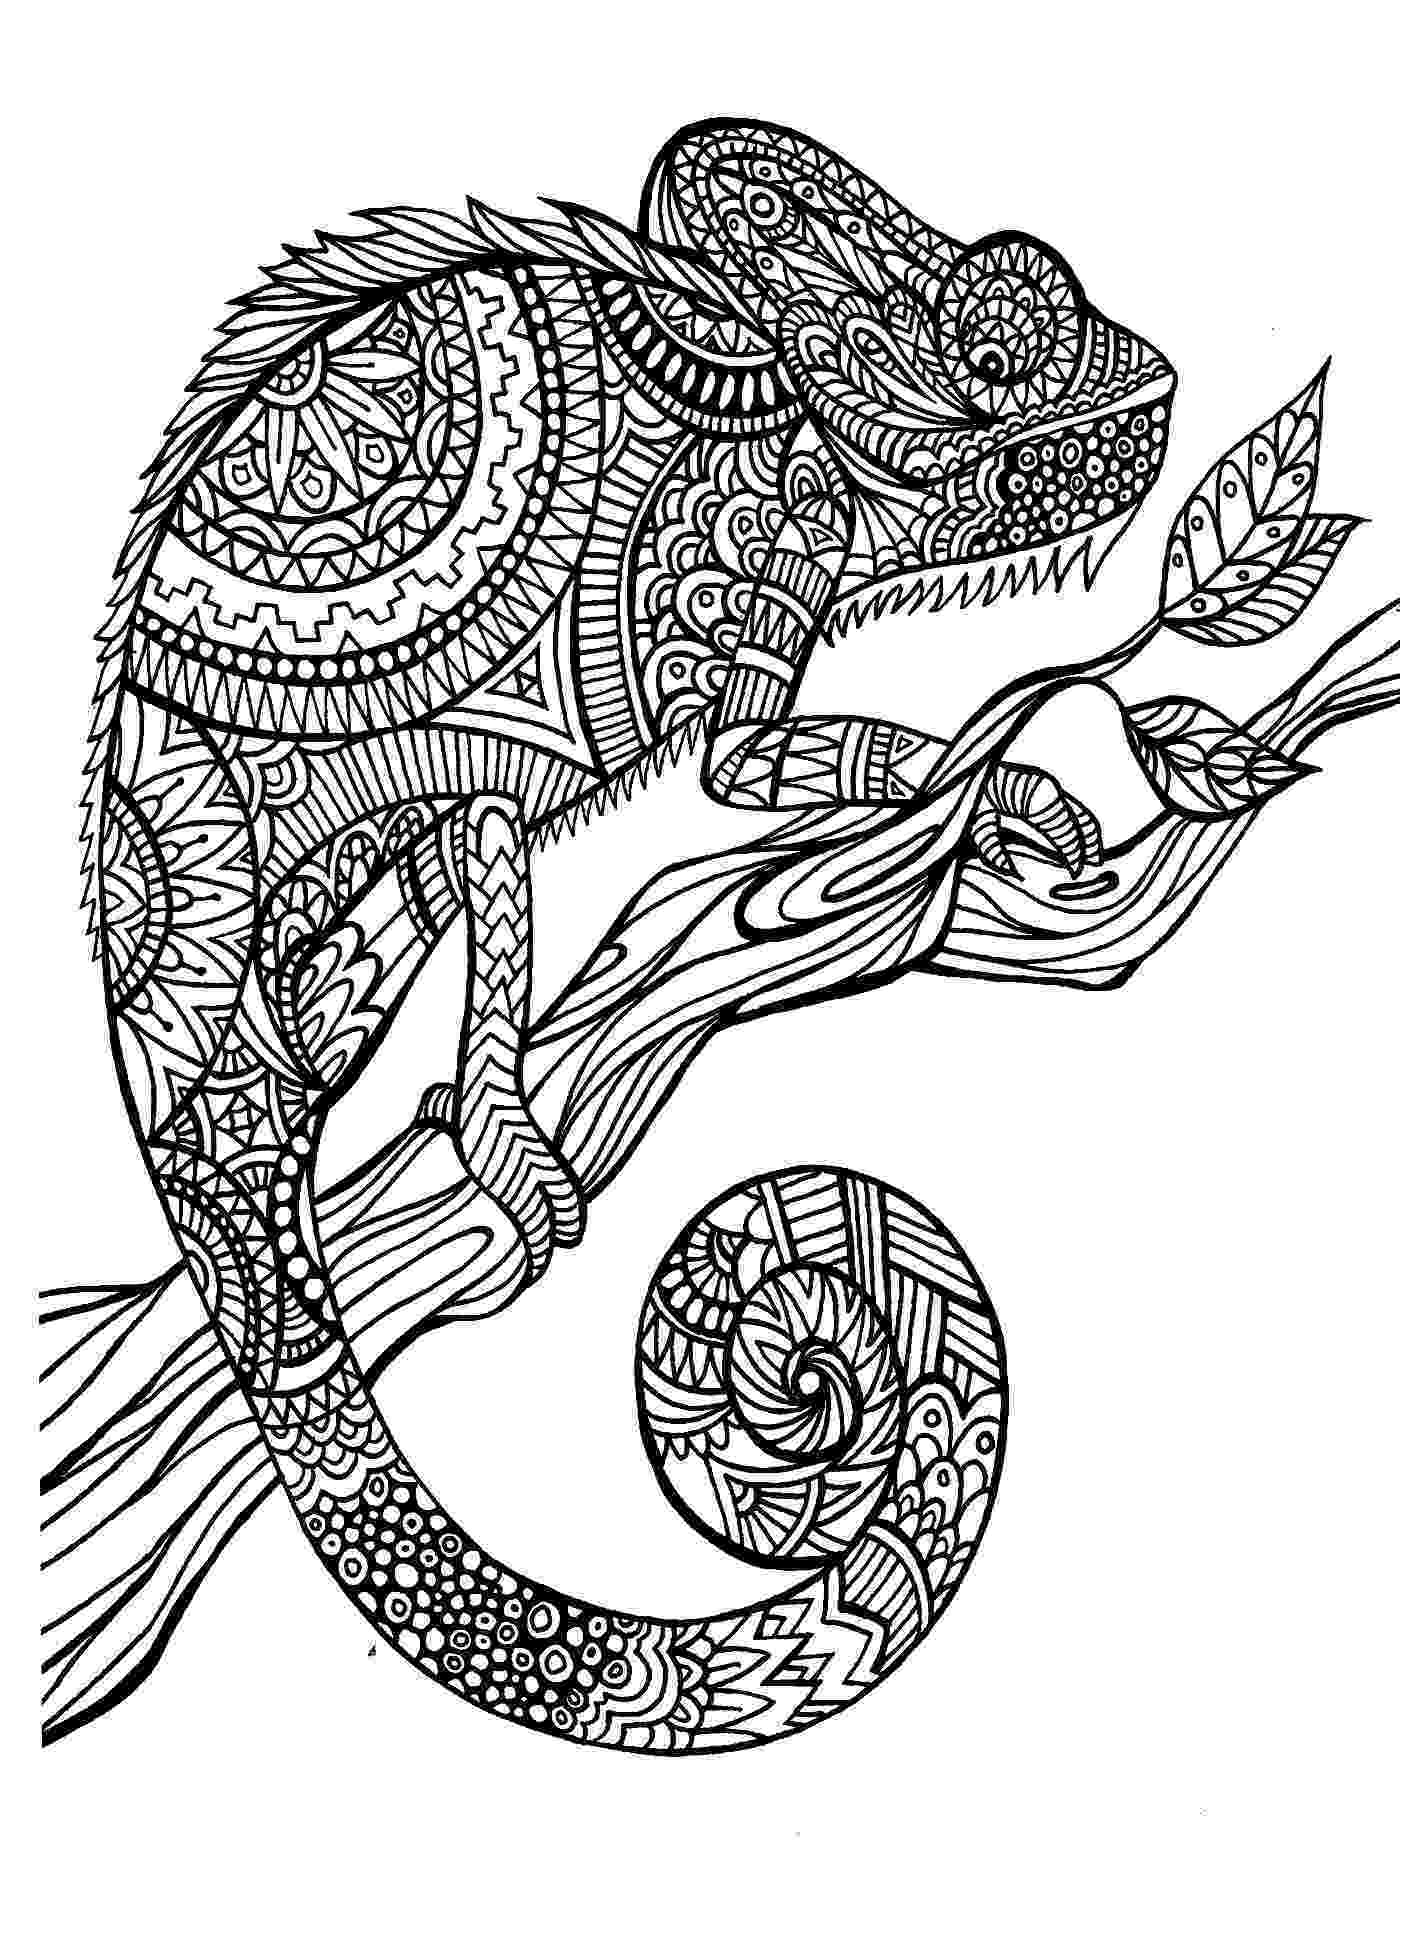 animal patterns colouring pages 63 adult coloring pages to nourish your mental visual pages animal patterns colouring